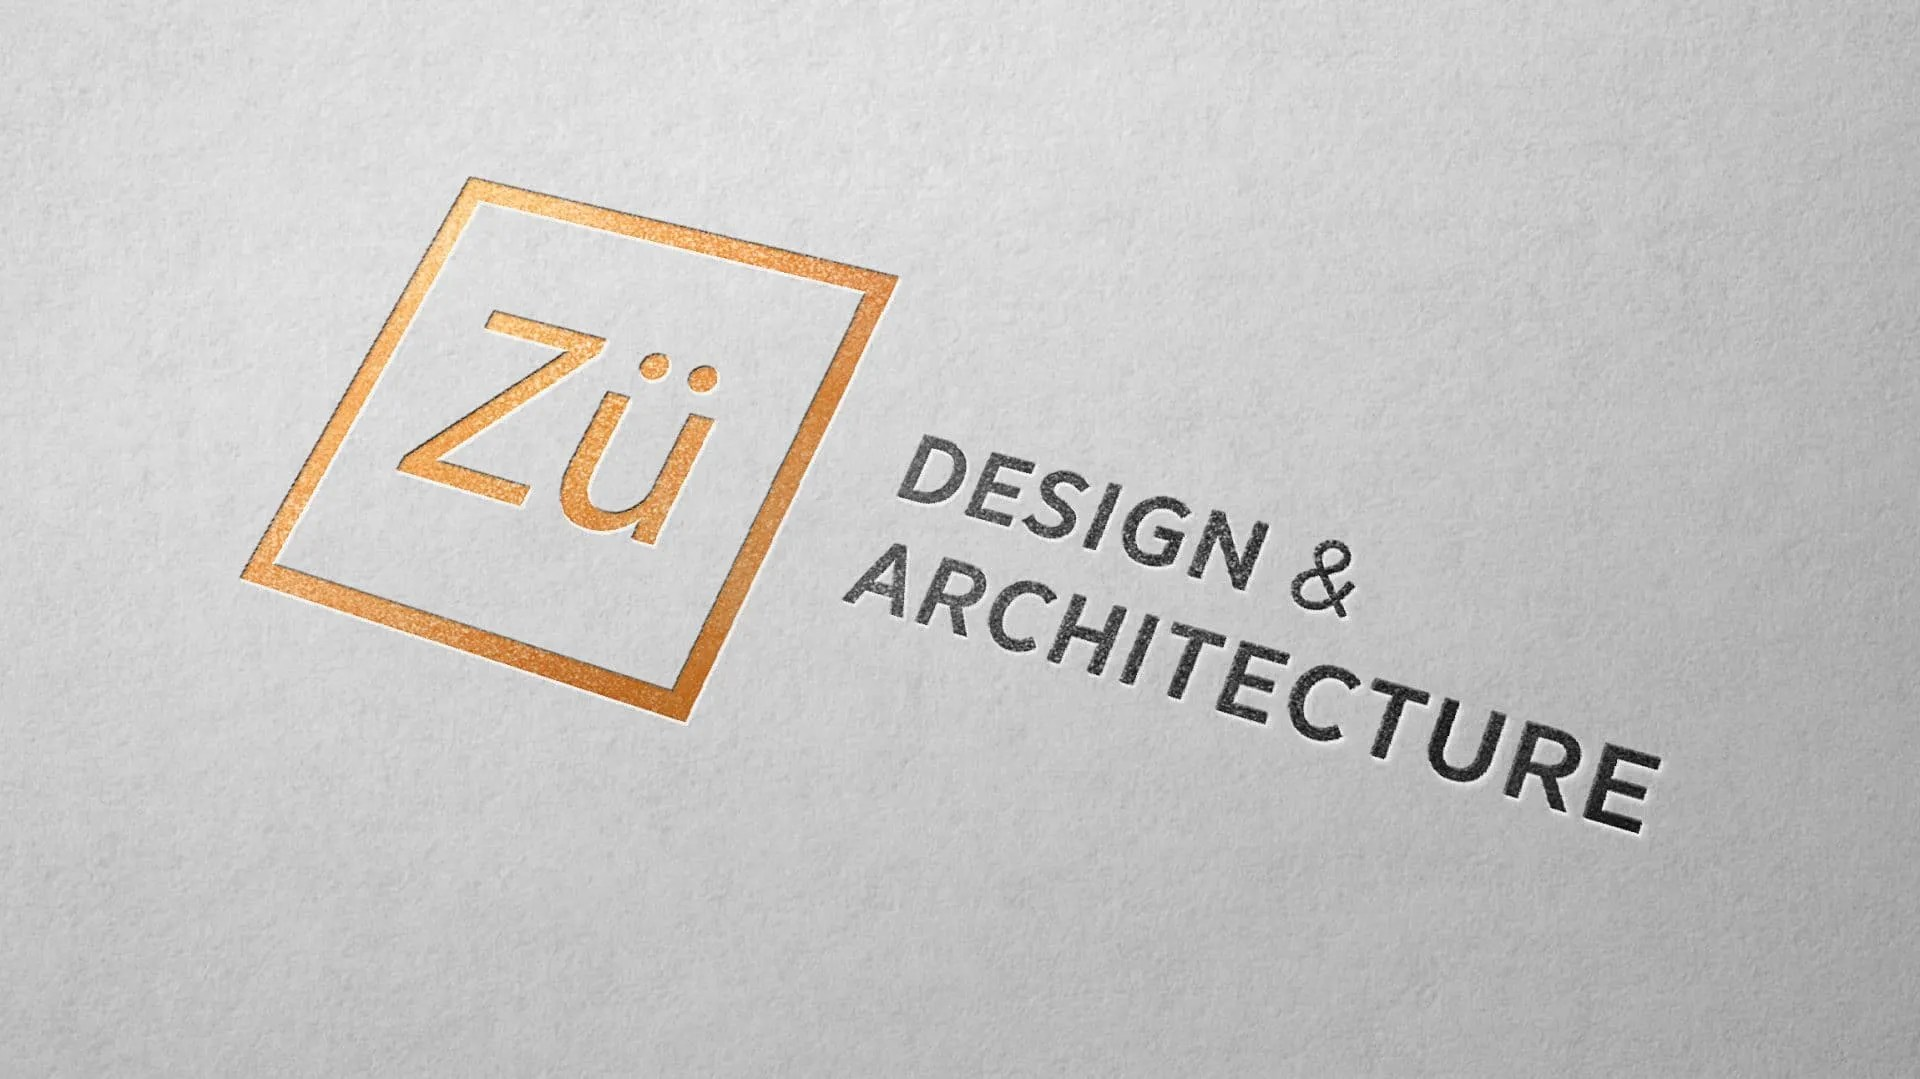 Zu Design & Architecture contact